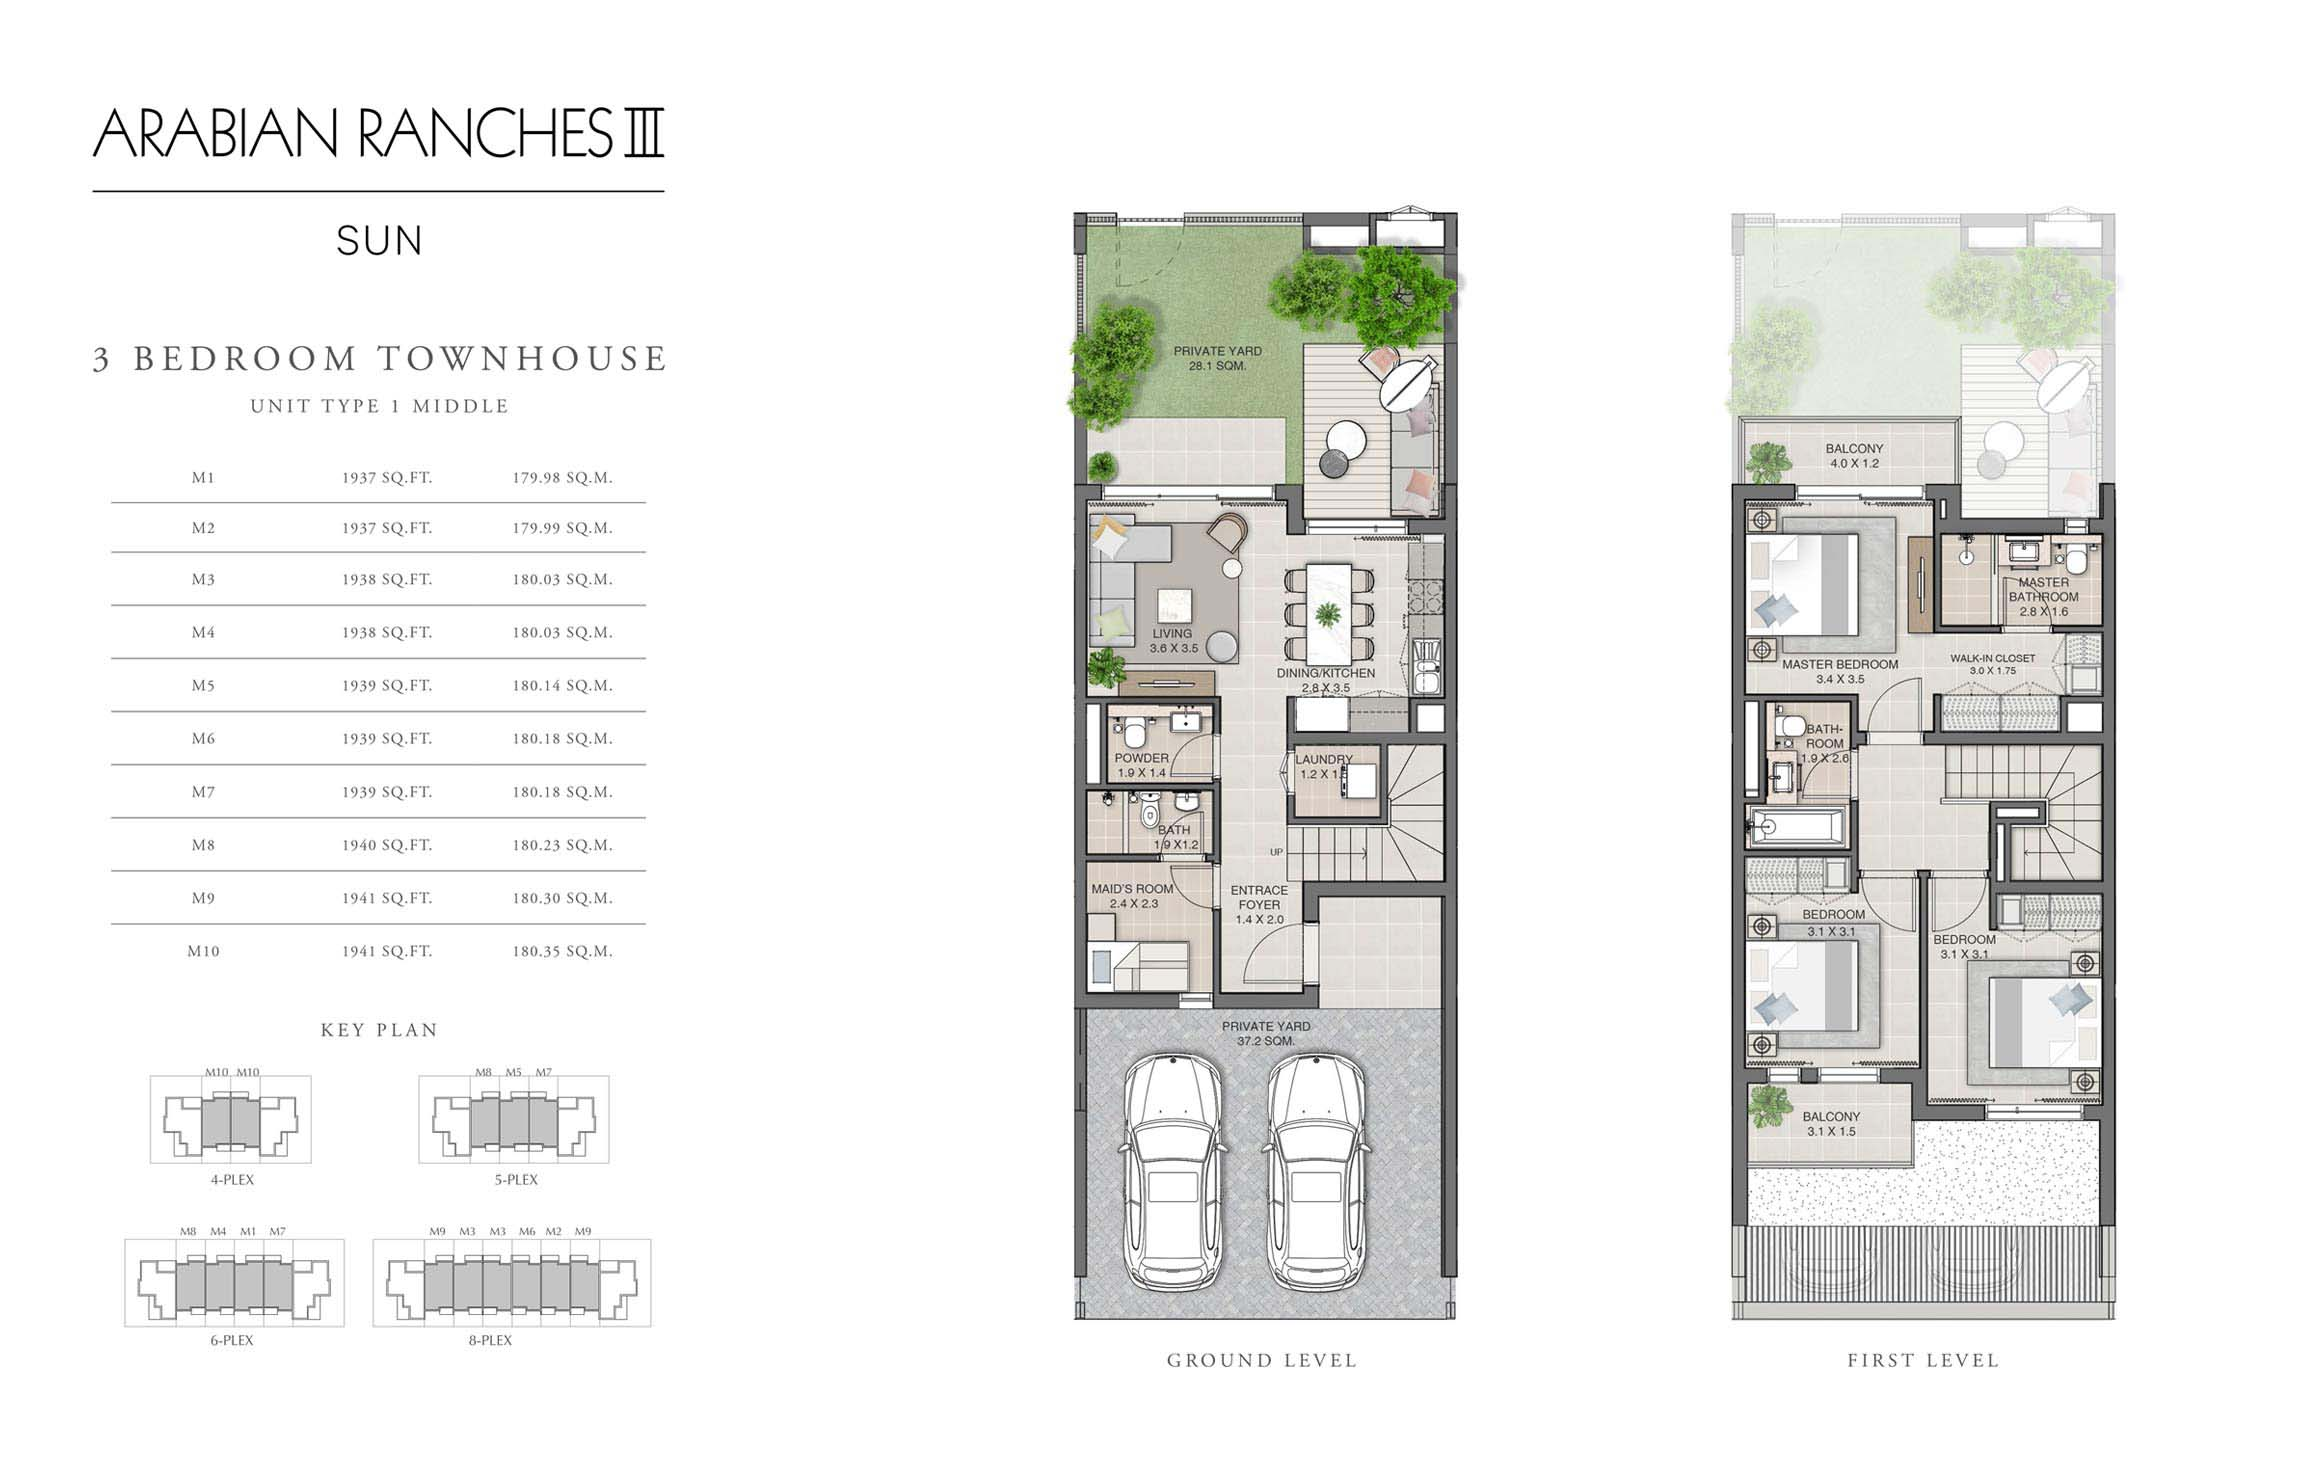 3 Bedroom Unit Type 1 Middle Size 1937 - 1941 sq ft